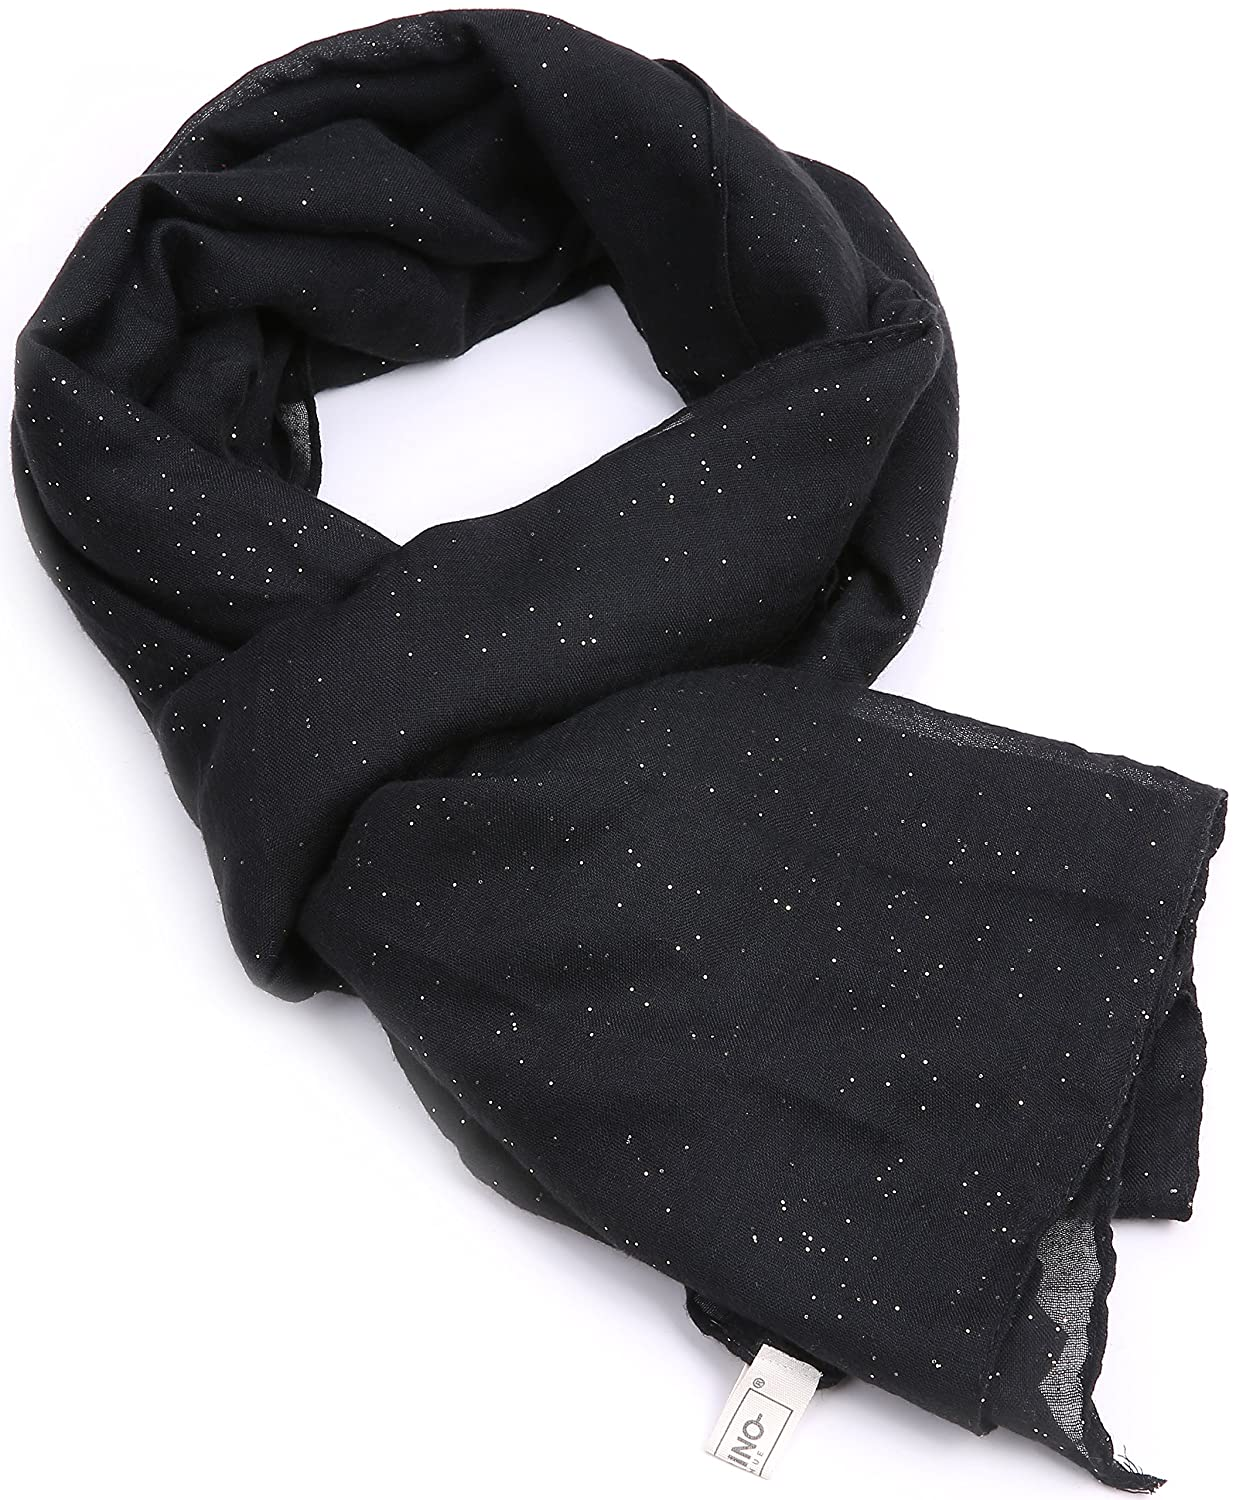 fcf3a29cd Spring Scarfs For Women - Long Lightweight, Sparkle Summer Scarfs For Women  - In A Gift Bag - Black at Amazon Women's Clothing store: